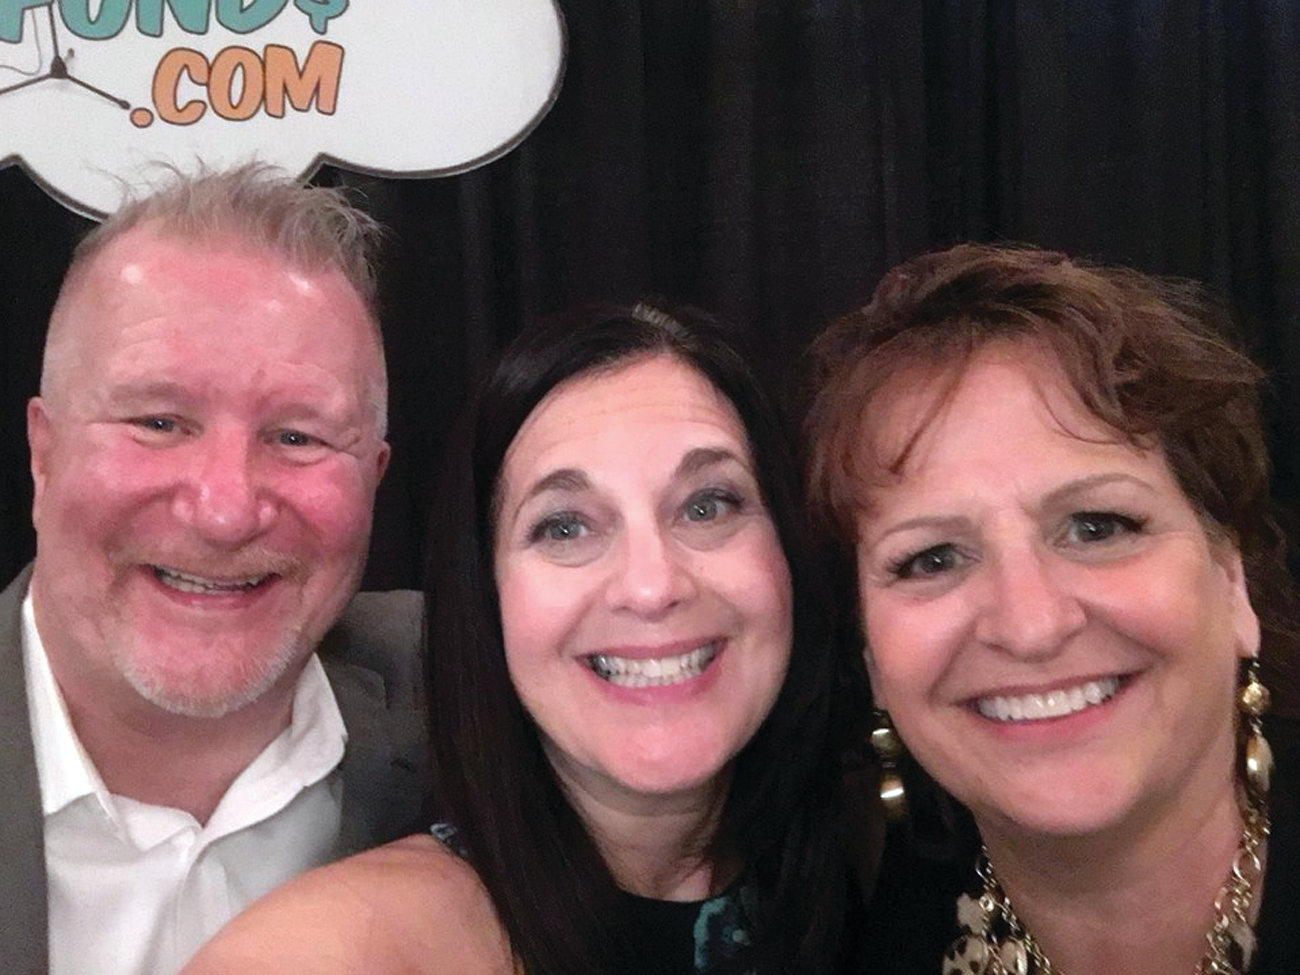 BRINGING THE FUNNY: Mike Cronin, left, and Mary Ellen DePetrillo Rinaldi, right, are both part of Funny 4 Funds' new Christian Comedy Division. They are pictured with comedian Rhonda Corey at Sacred Exchange Fellowship in this September 2018 photo.